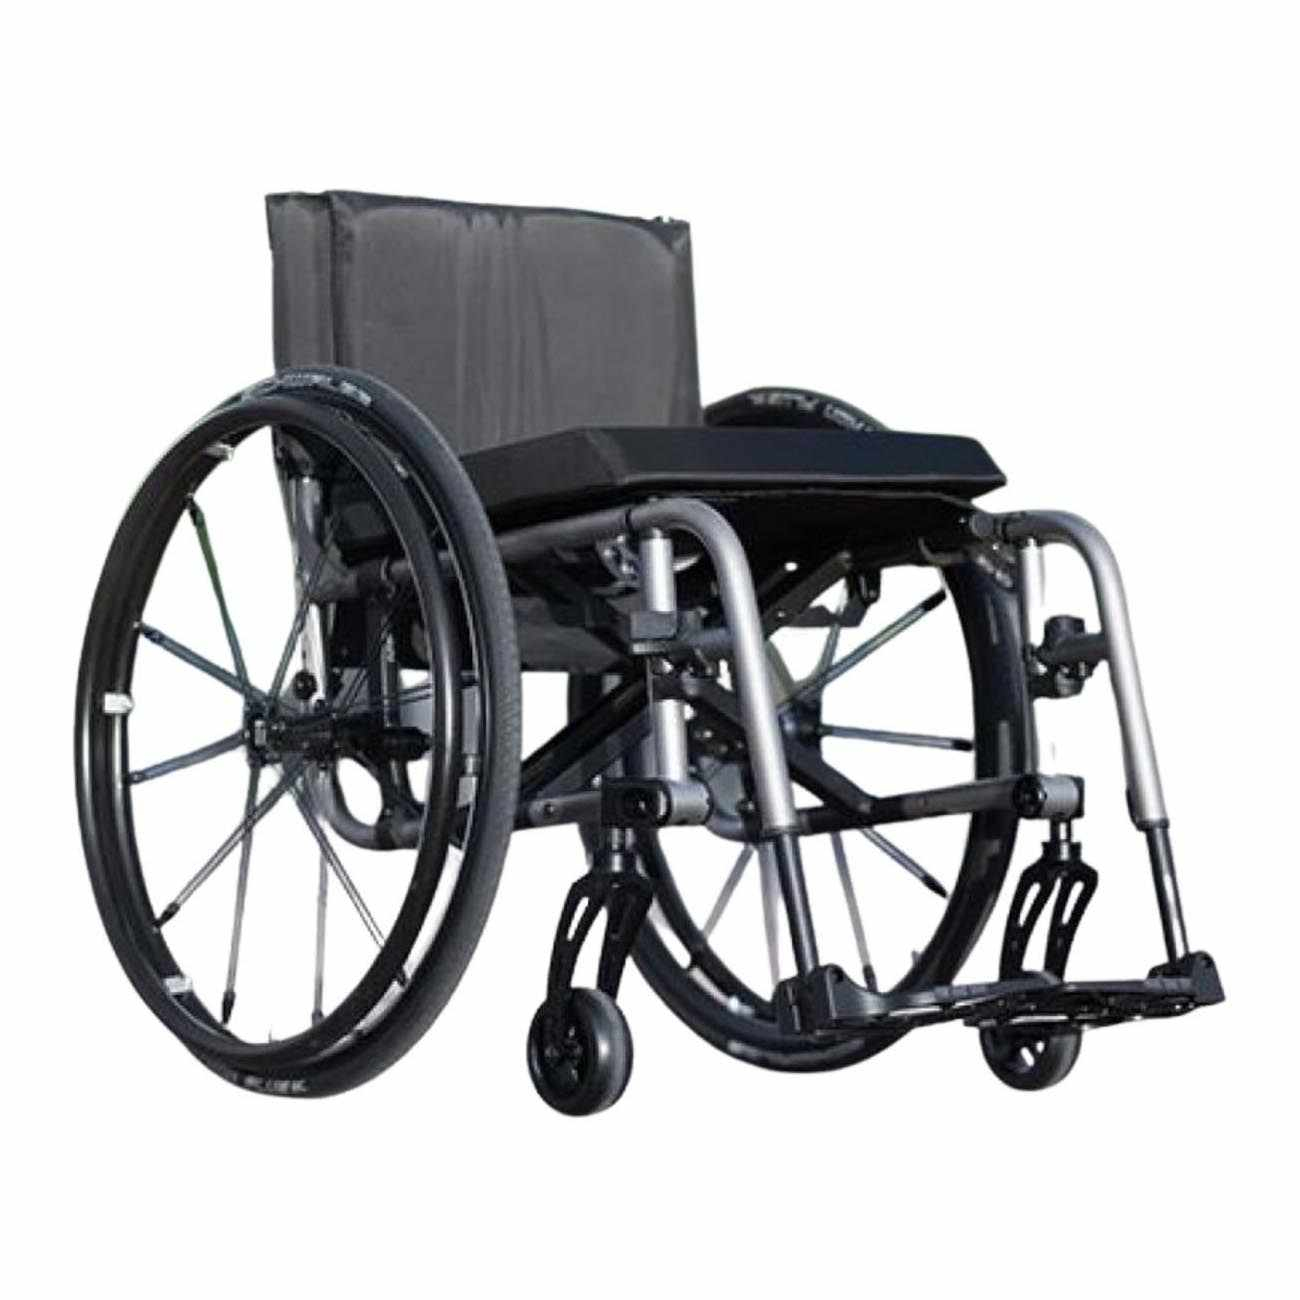 TiLite 2GX series folding ultralight wheelchair